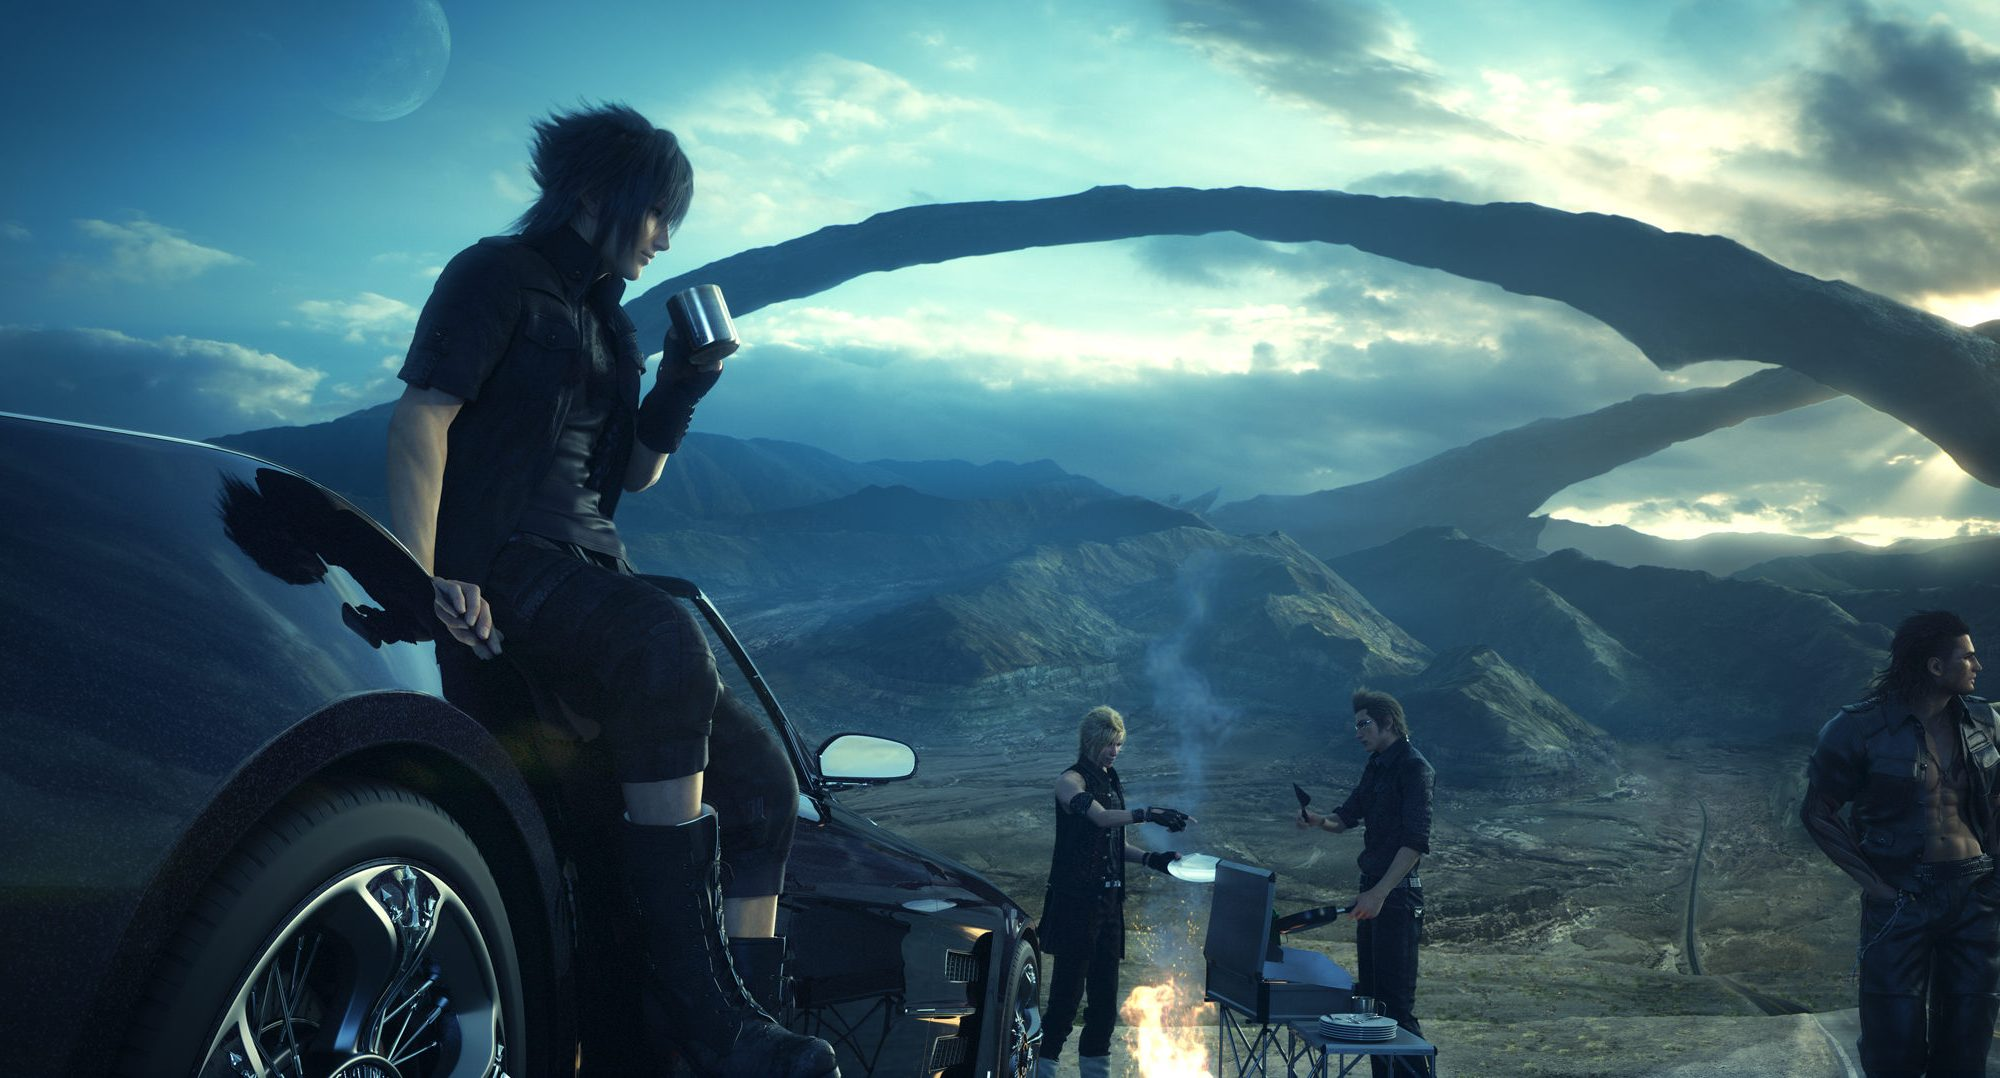 Final Fantasy Fans Don't Know What's Best for the Series